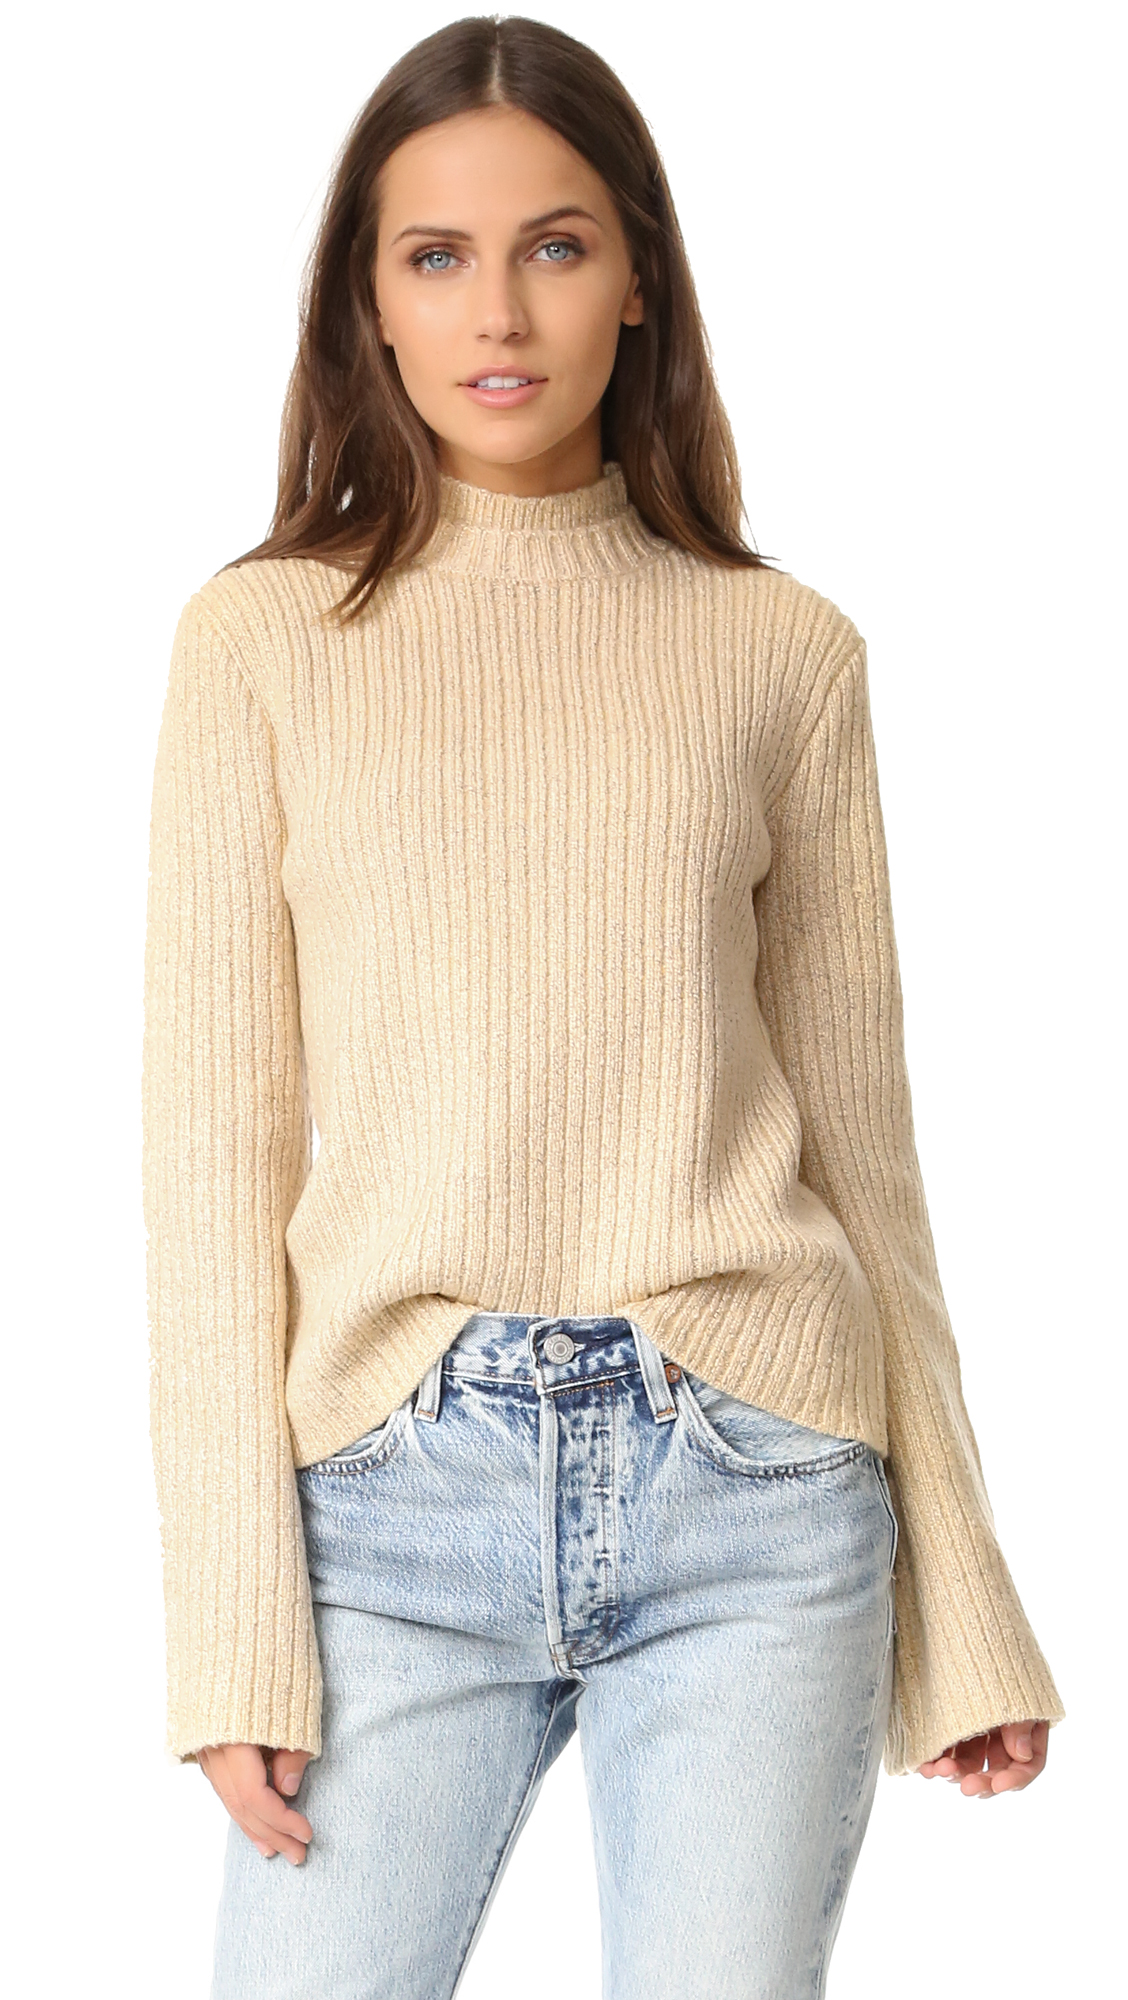 Wide sleeves add volume to this cozy, speckled MINKPINK sweater. Mock neck collar. Fabric: Ribbed knit. 100% acrylic. Dry clean. Imported, China. Measurements Length: 22.75in / 58cm, from shoulder Measurements from size S. Available sizes: L,M,S,